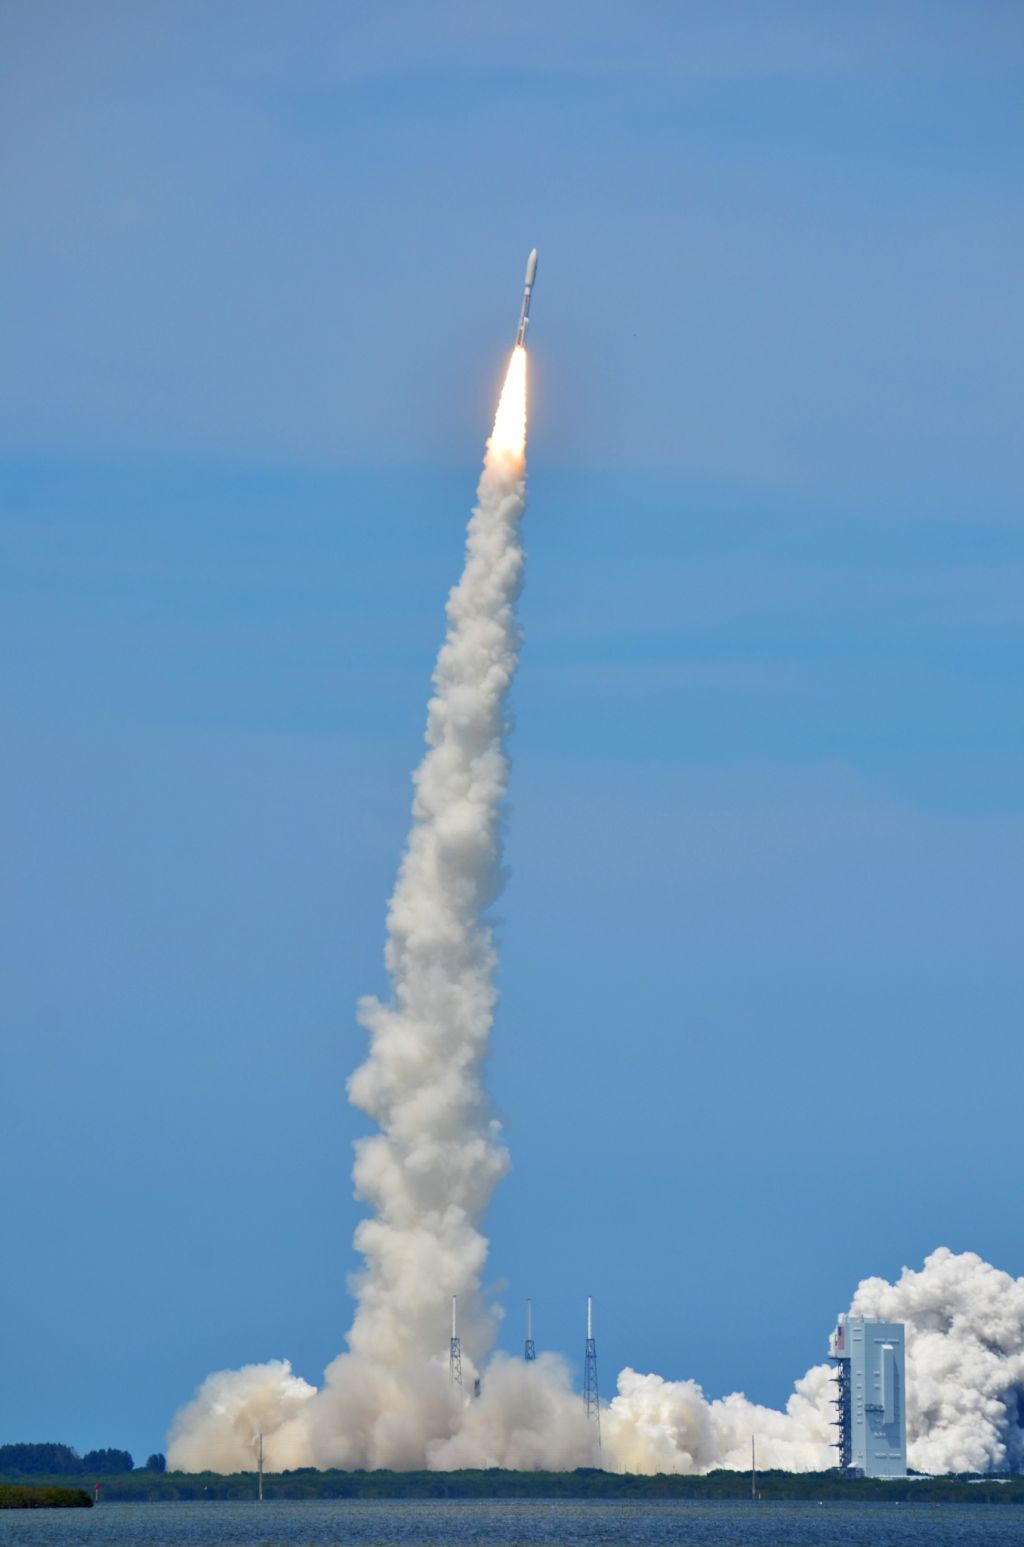 USAF's AEHF 2 Satellite Climbs into the Sky